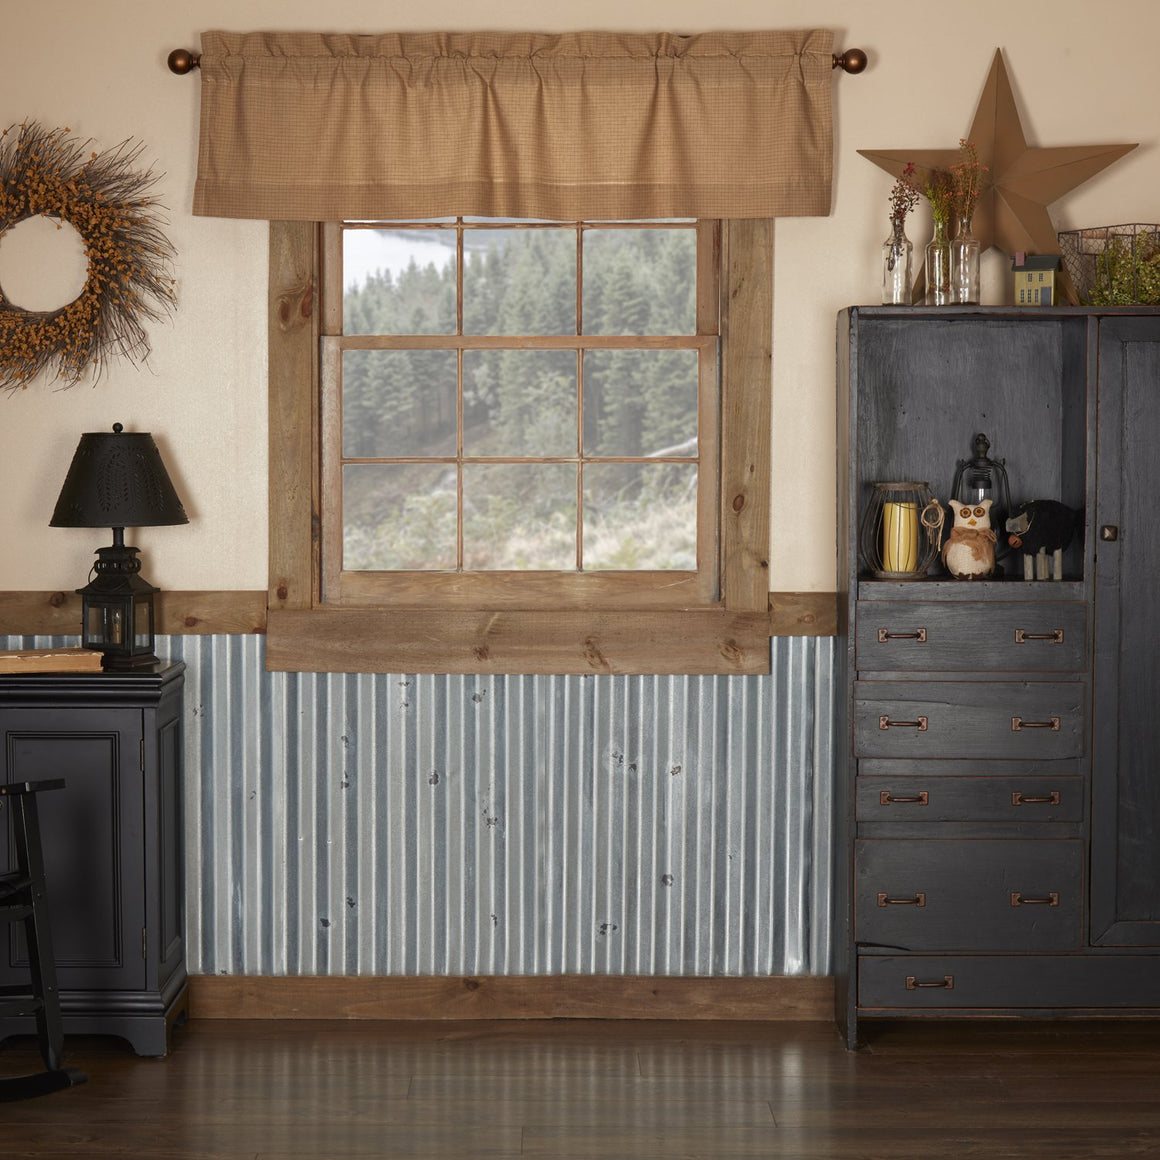 Kindred Star Valance